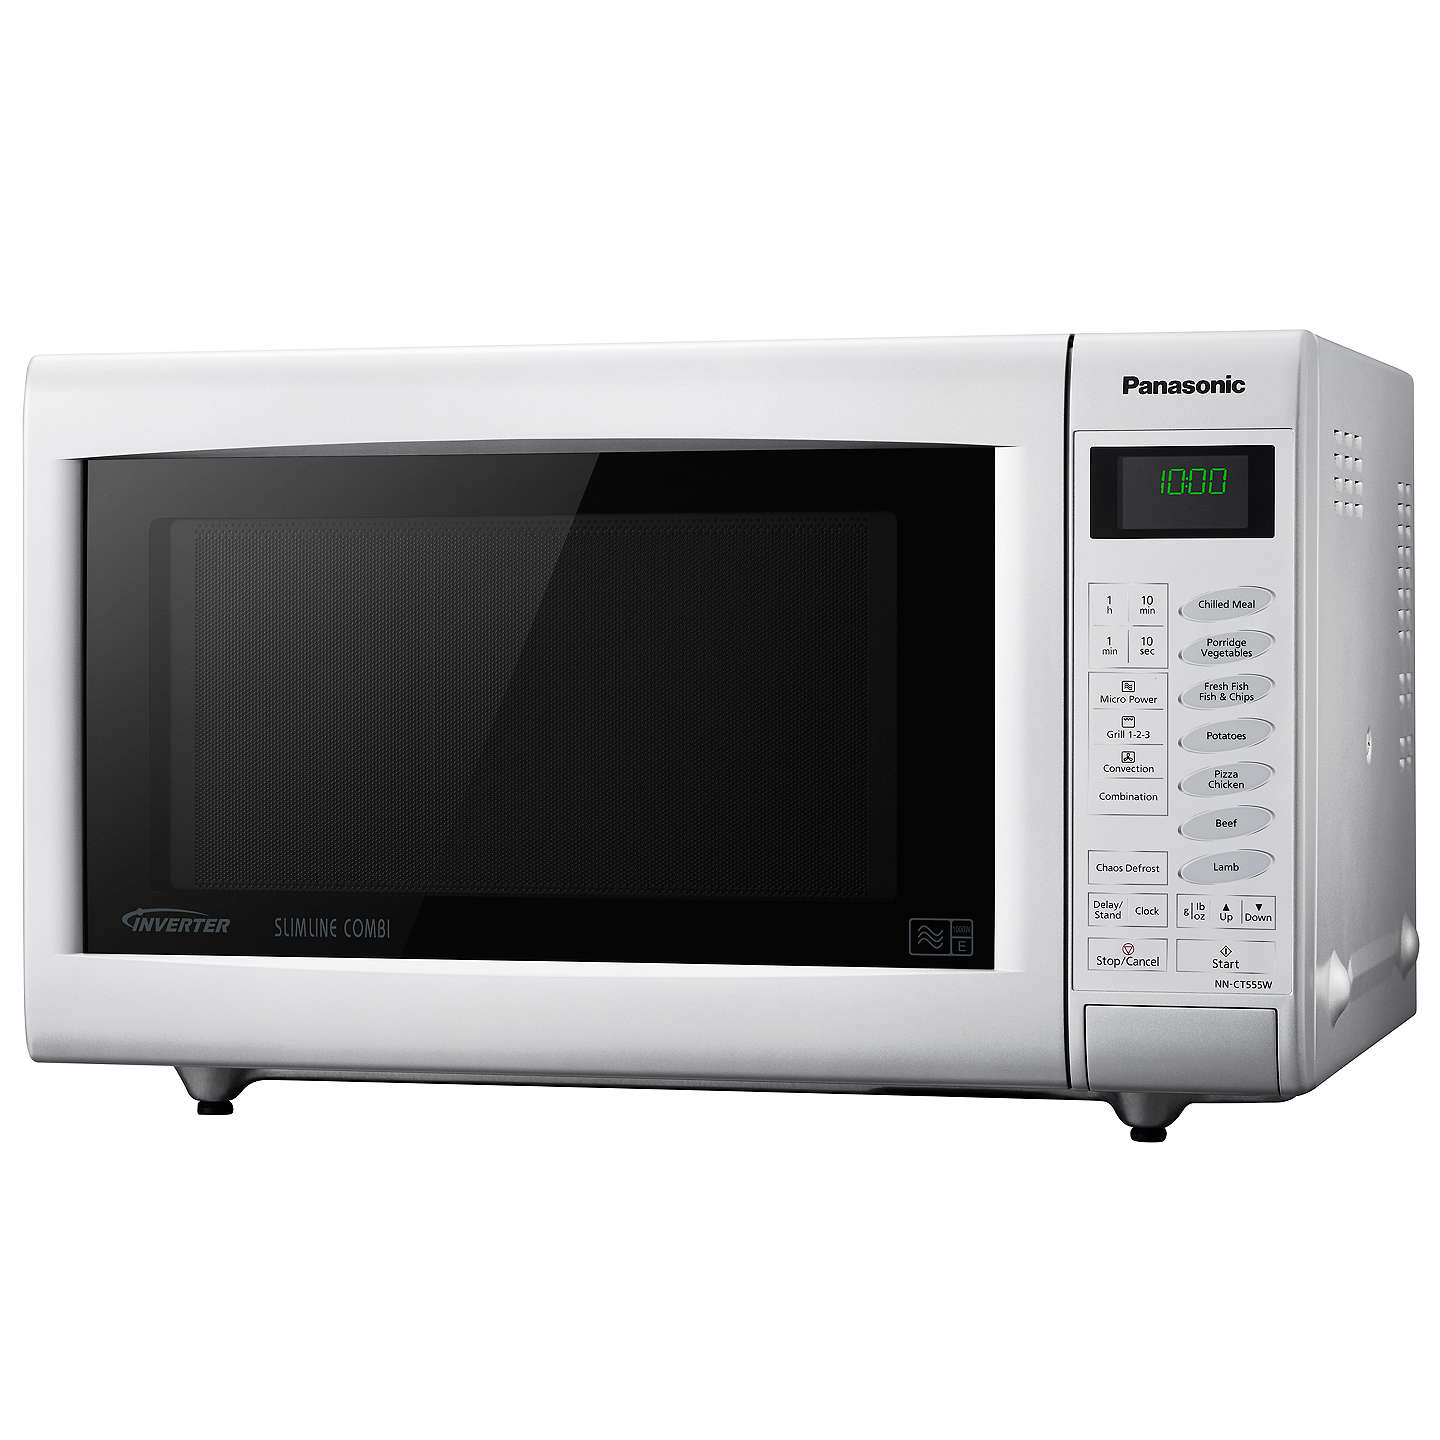 Panasonic NN-CT555WBPQ Combination Microwave Oven, White at John Lewis